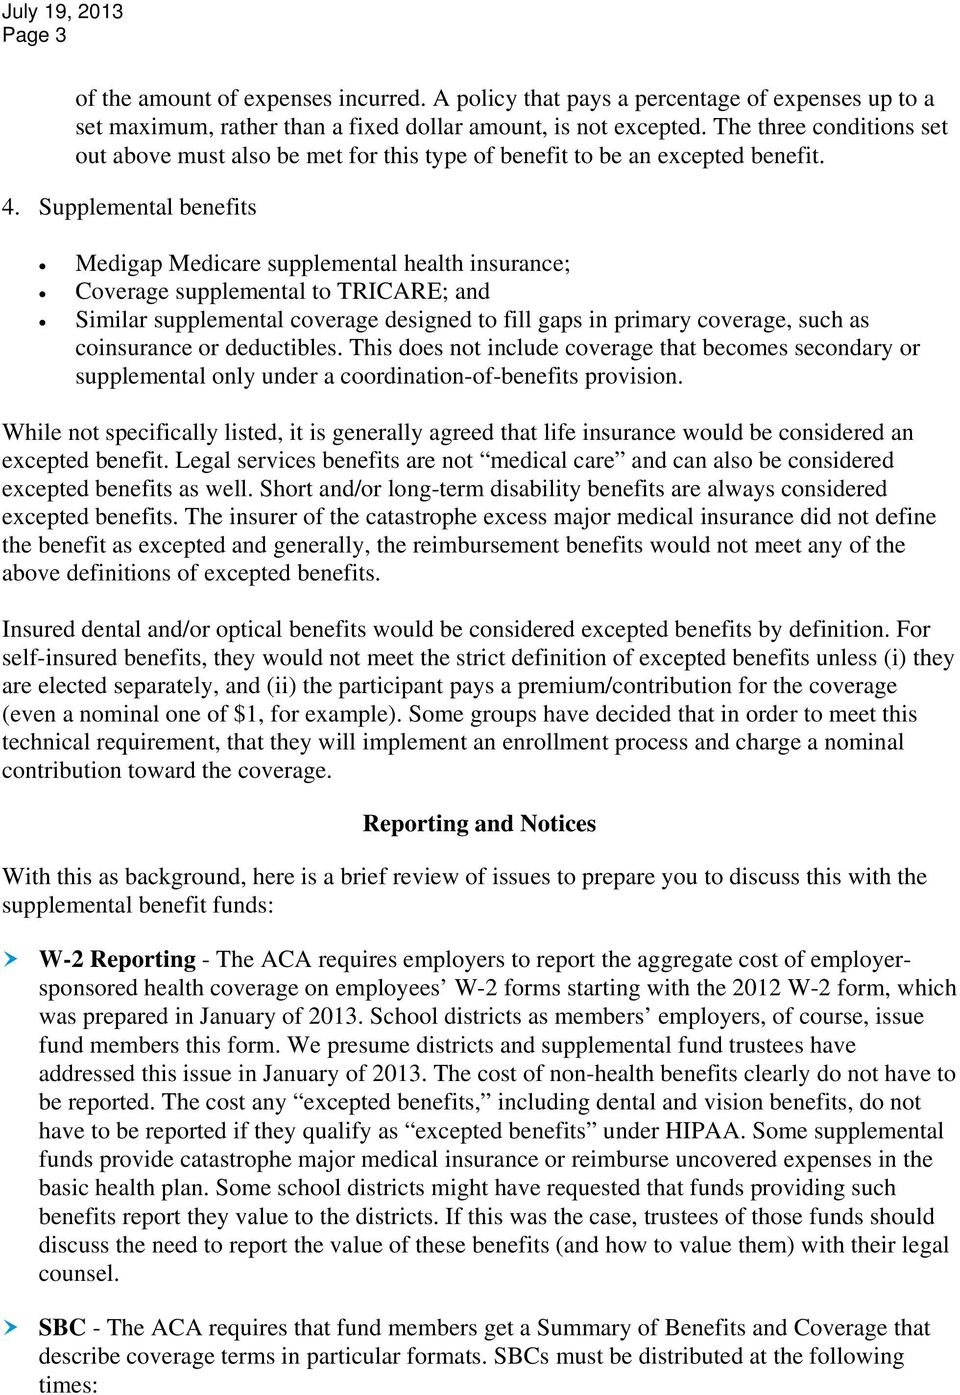 Supplemental benefits Medigap Medicare supplemental health insurance; Coverage supplemental to TRICARE; and Similar supplemental coverage designed to fill gaps in primary coverage, such as